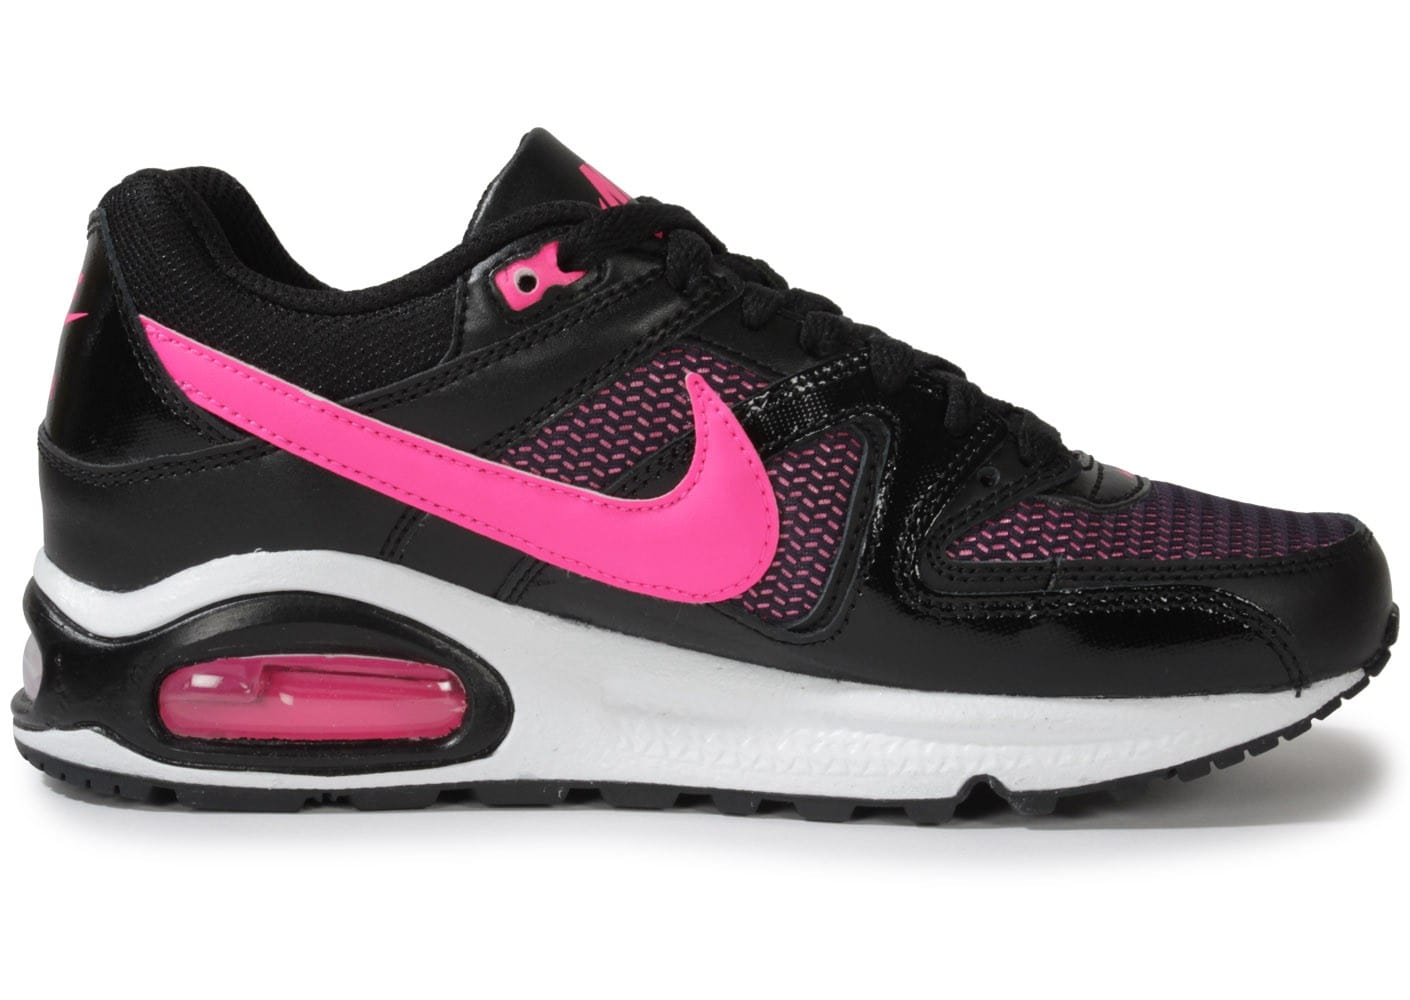 nike air max command junior noir et rose chaussures chaussures chausport. Black Bedroom Furniture Sets. Home Design Ideas